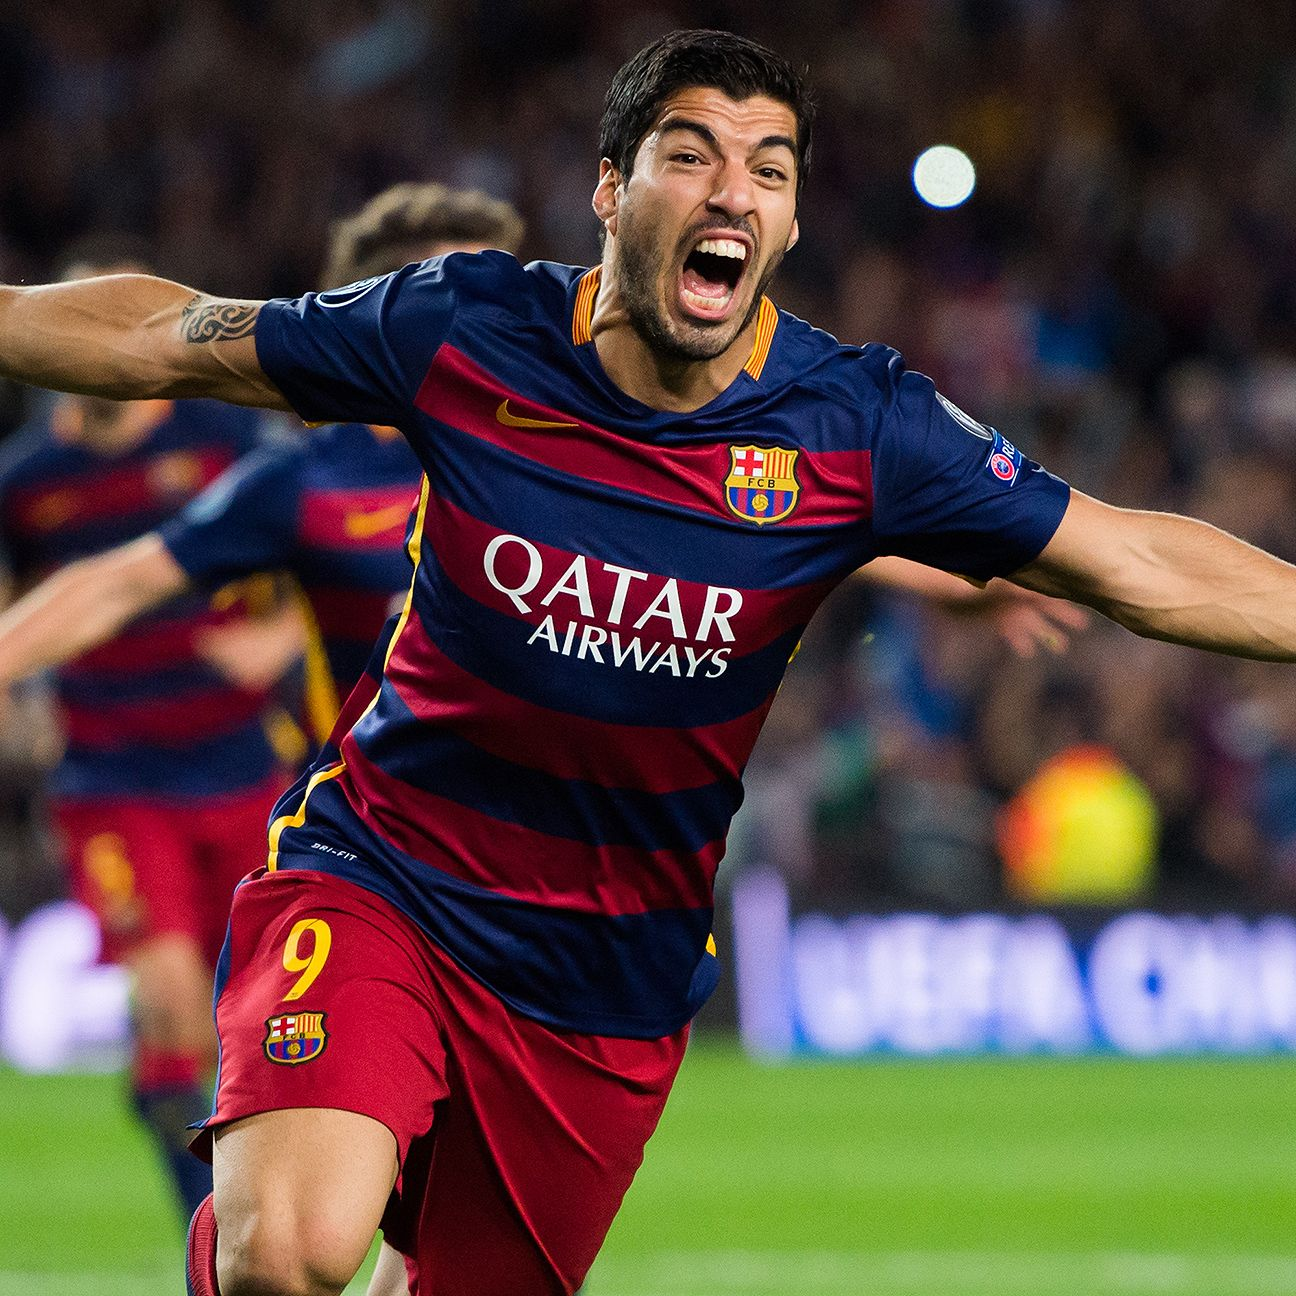 Since Lionel Messi's injury, Luis Suarez has scored the winner in each of Barcelona's two victories, including Tuesday's 2-1 triumph over Bayer.